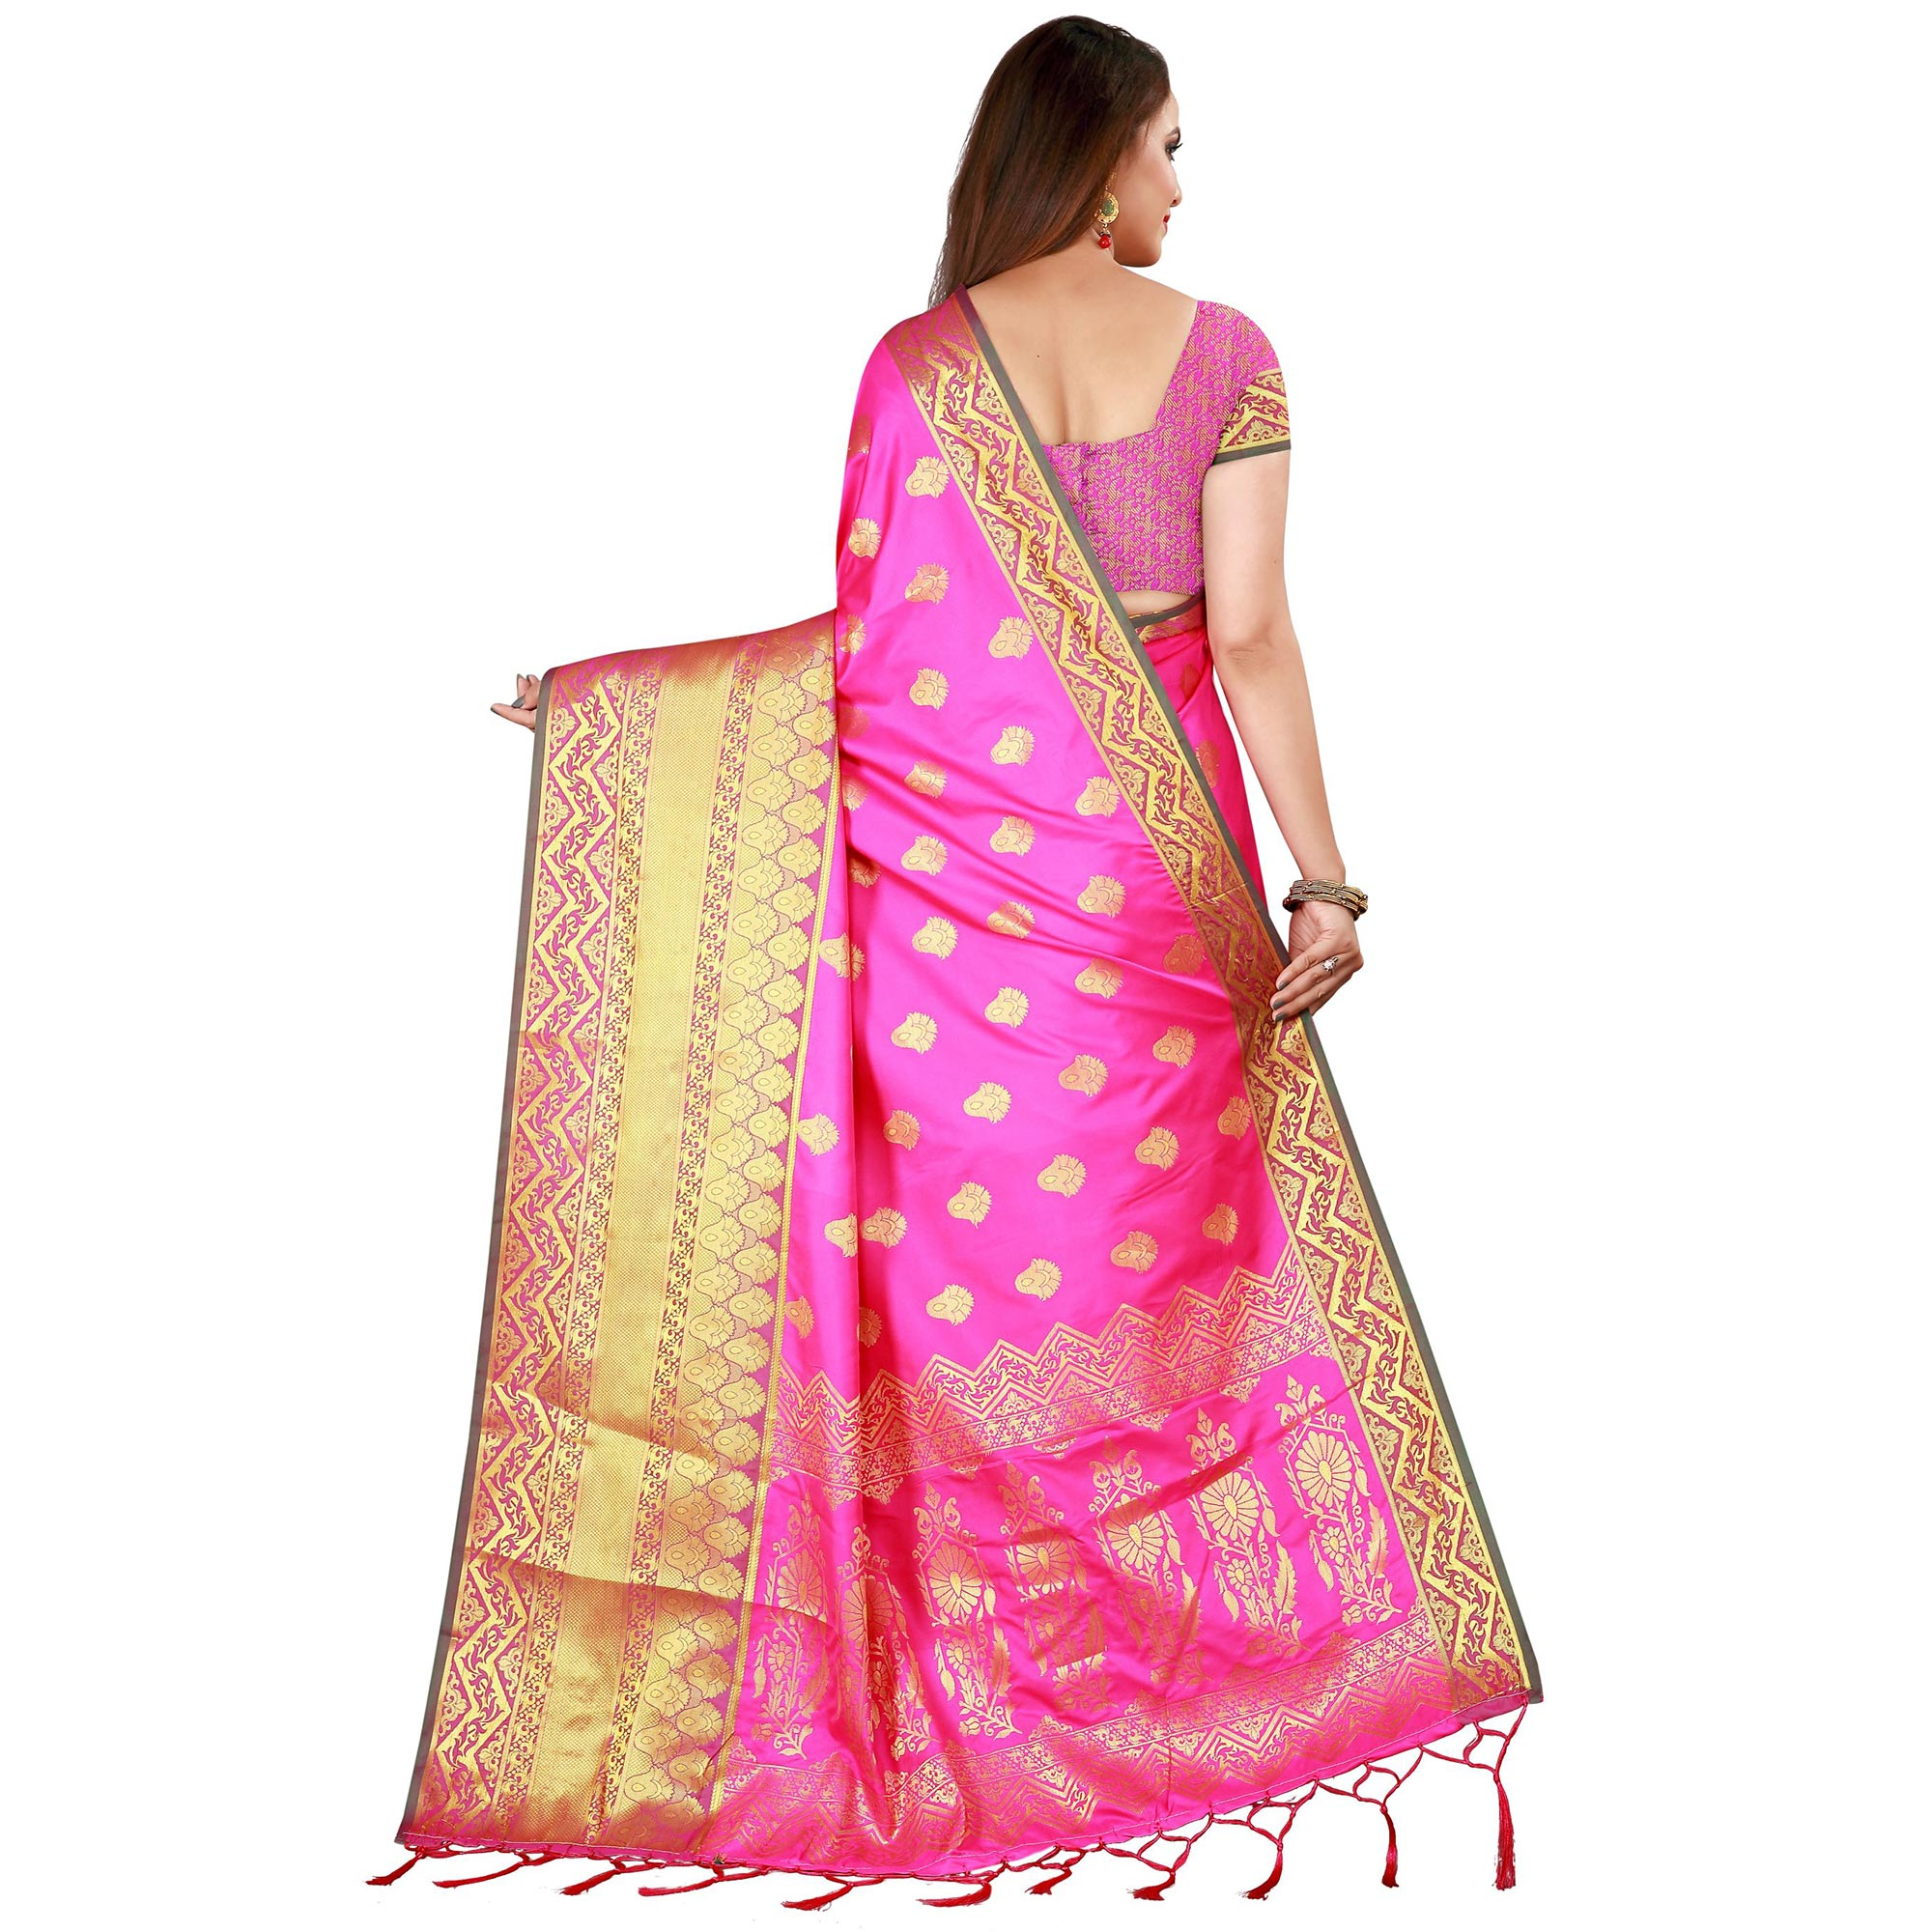 Stunning Pink Colored Festive Wear Woven Banarasi Silk Saree